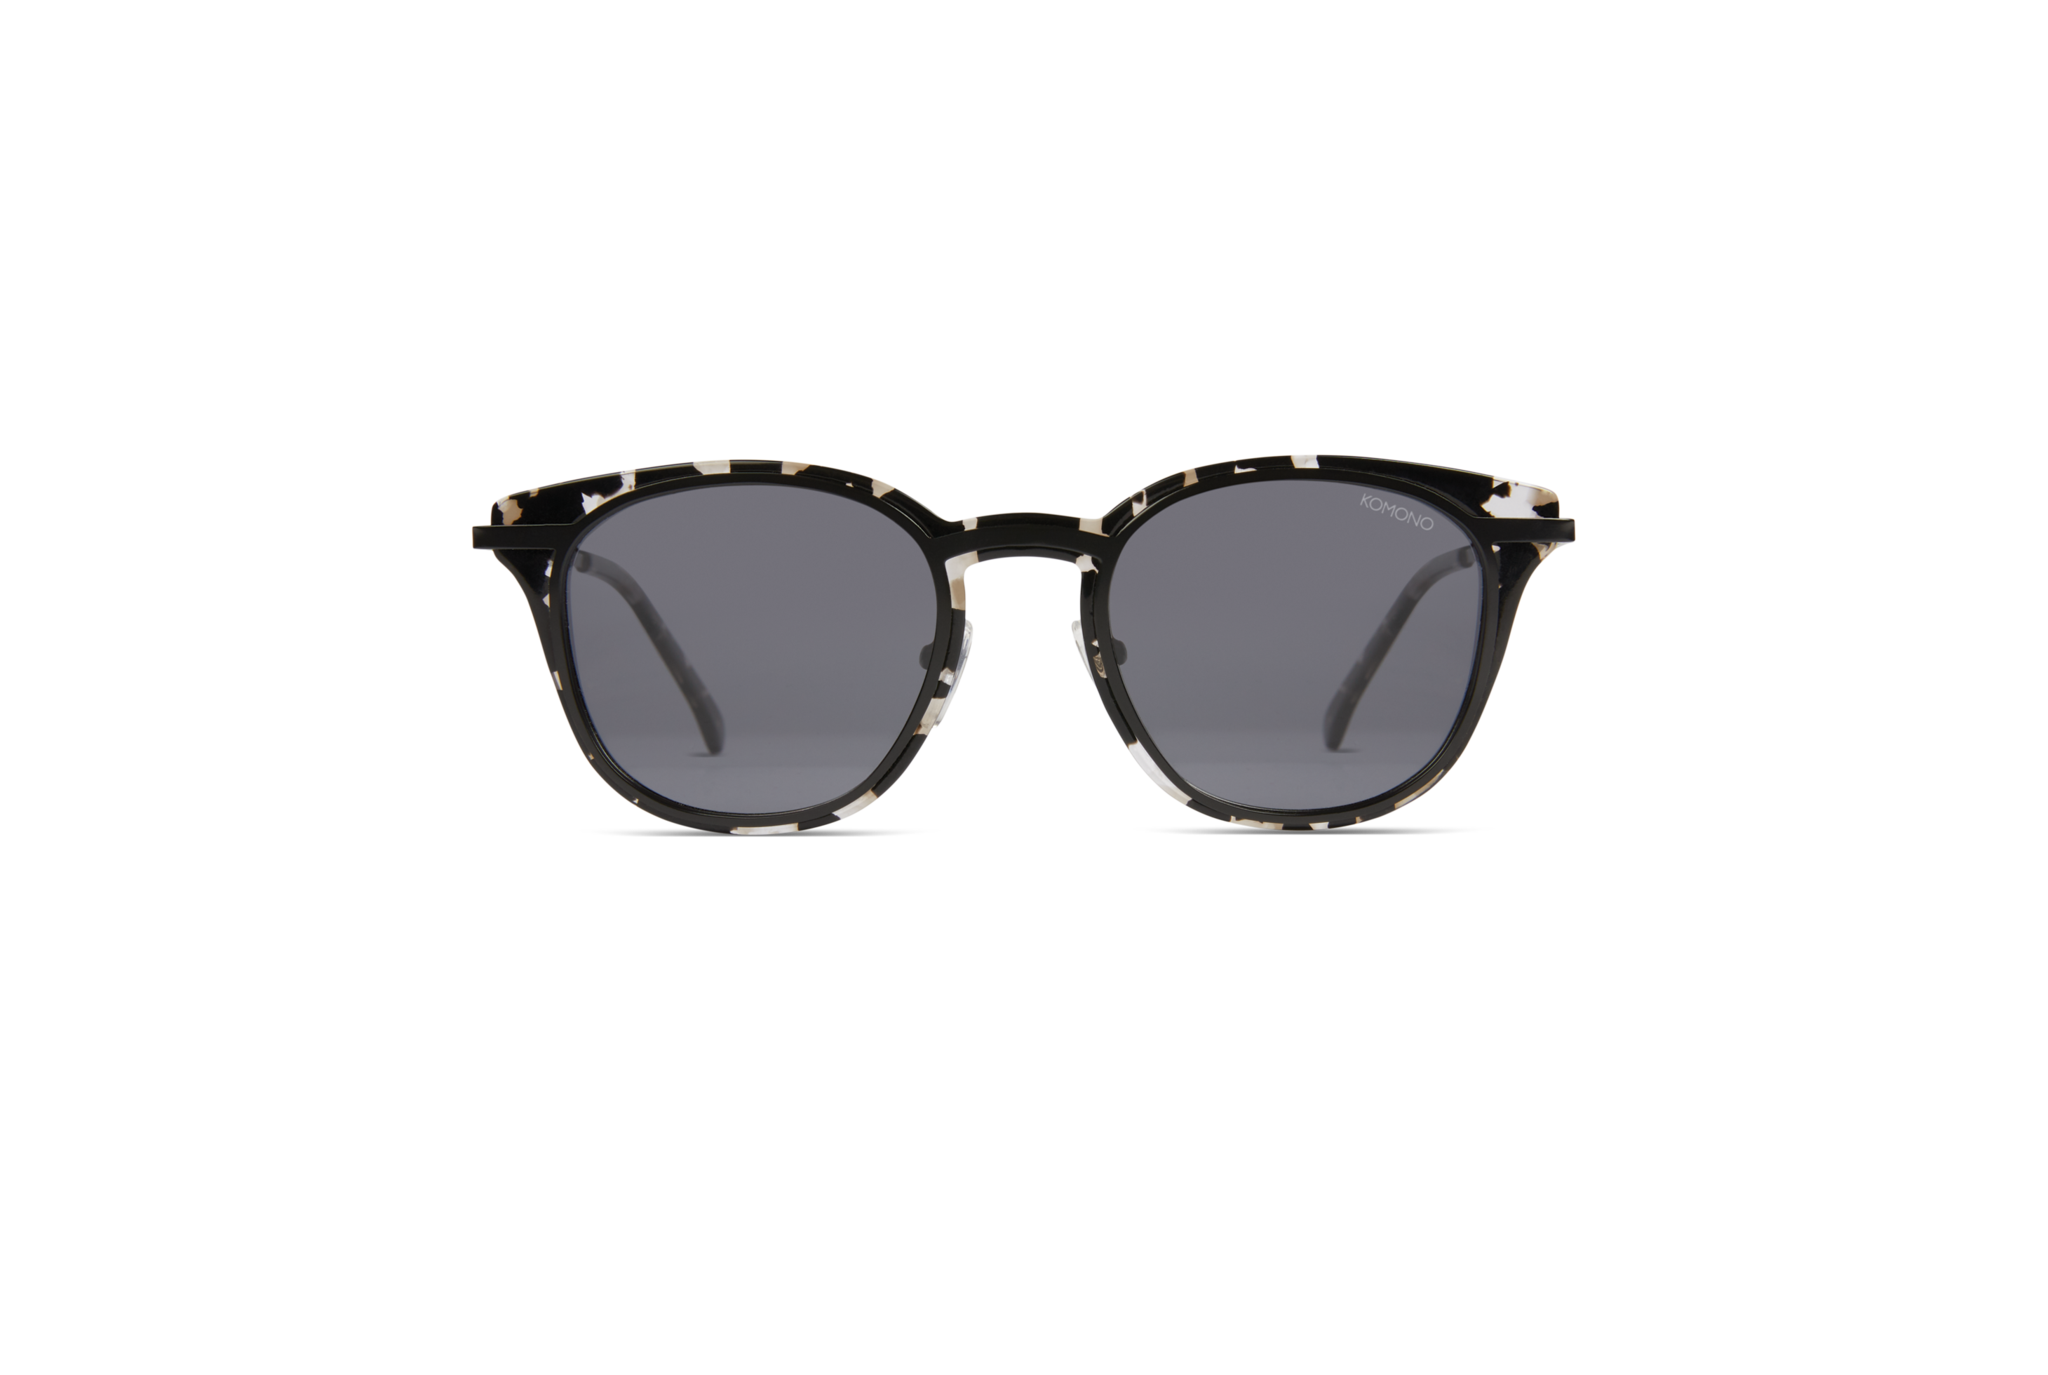 Komono - Sydney Clear Demi Sunglasses / Solid Smoke Lenses